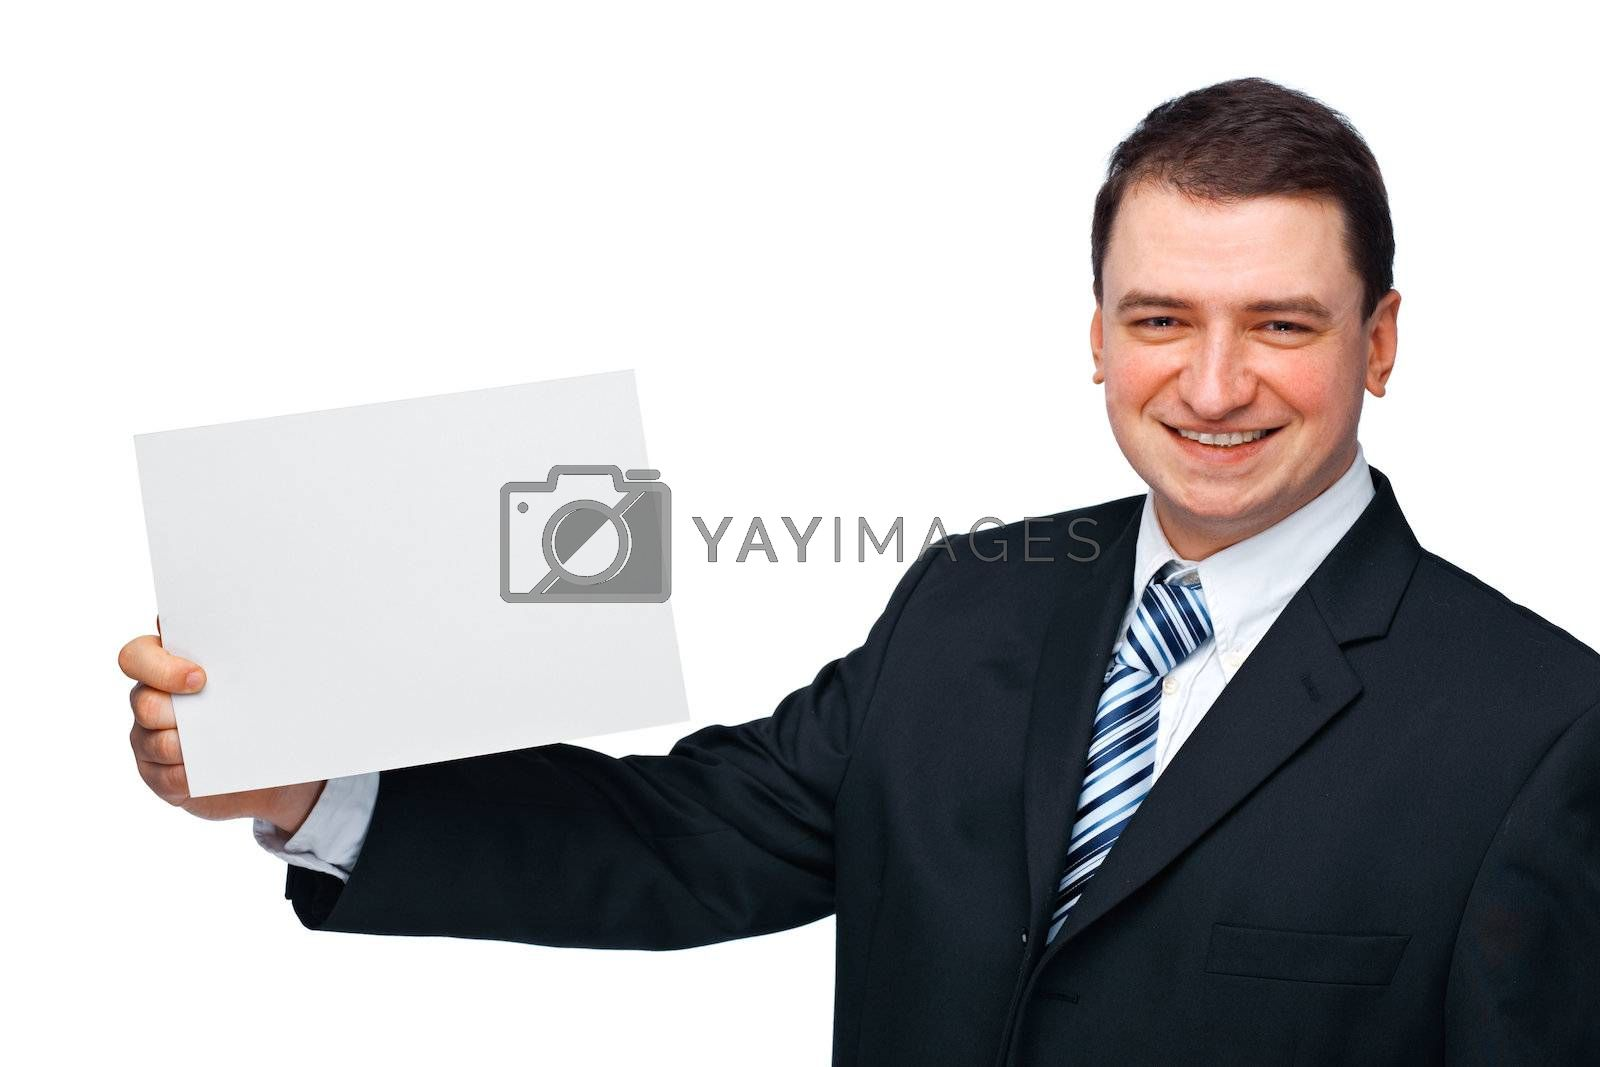 A successful happy business executive holding an empty billboard